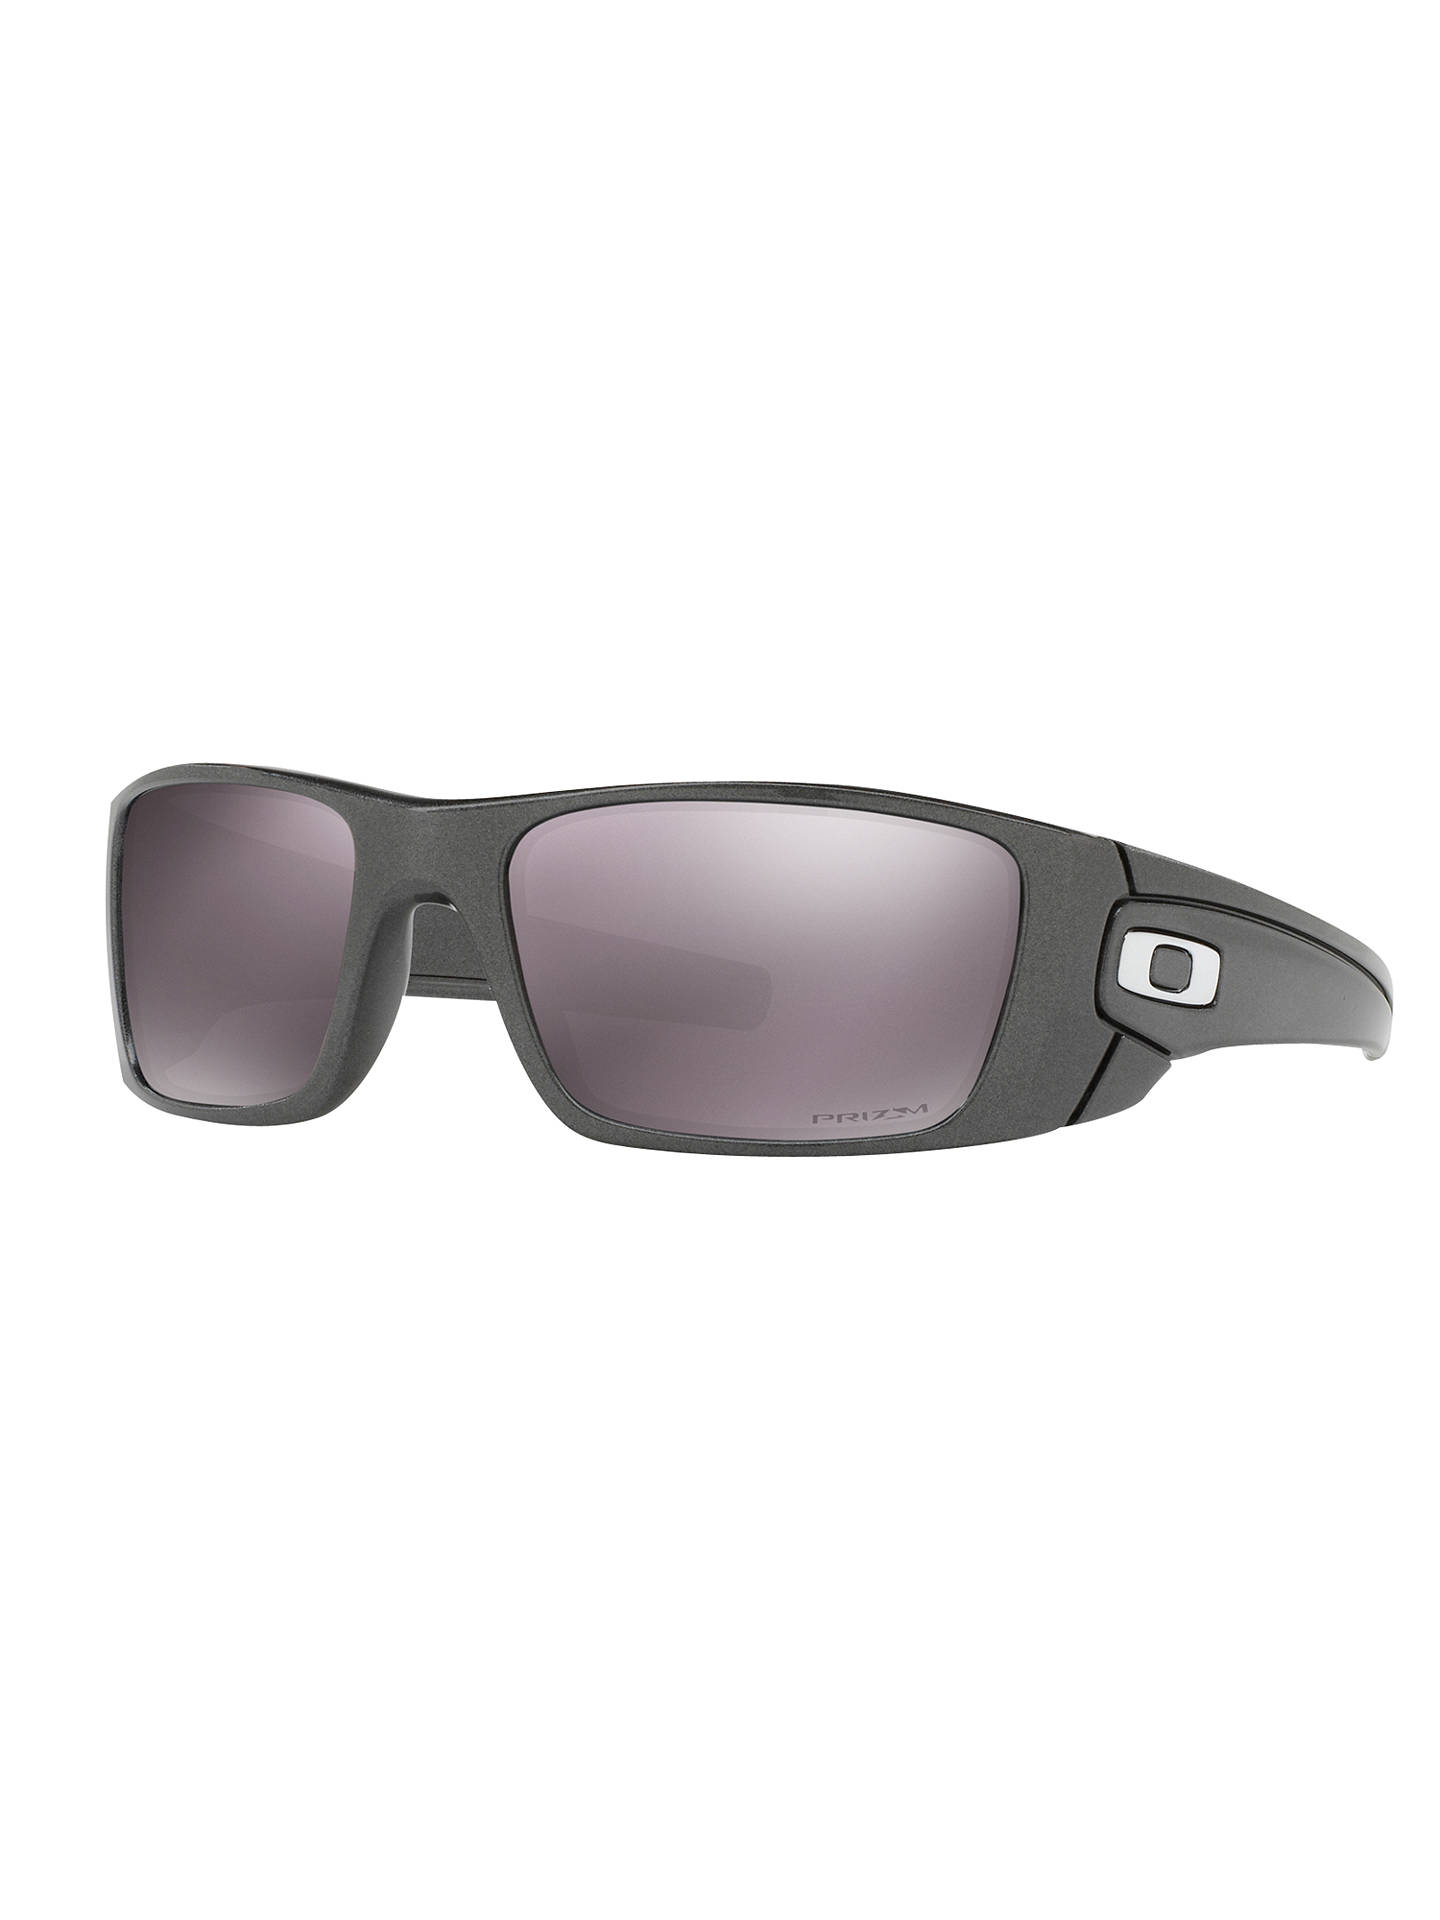 824e3280300 ... low price buyoakley oo9096 fuel cell polarized sunglasses grey online  at johnlewis a1772 ad1be